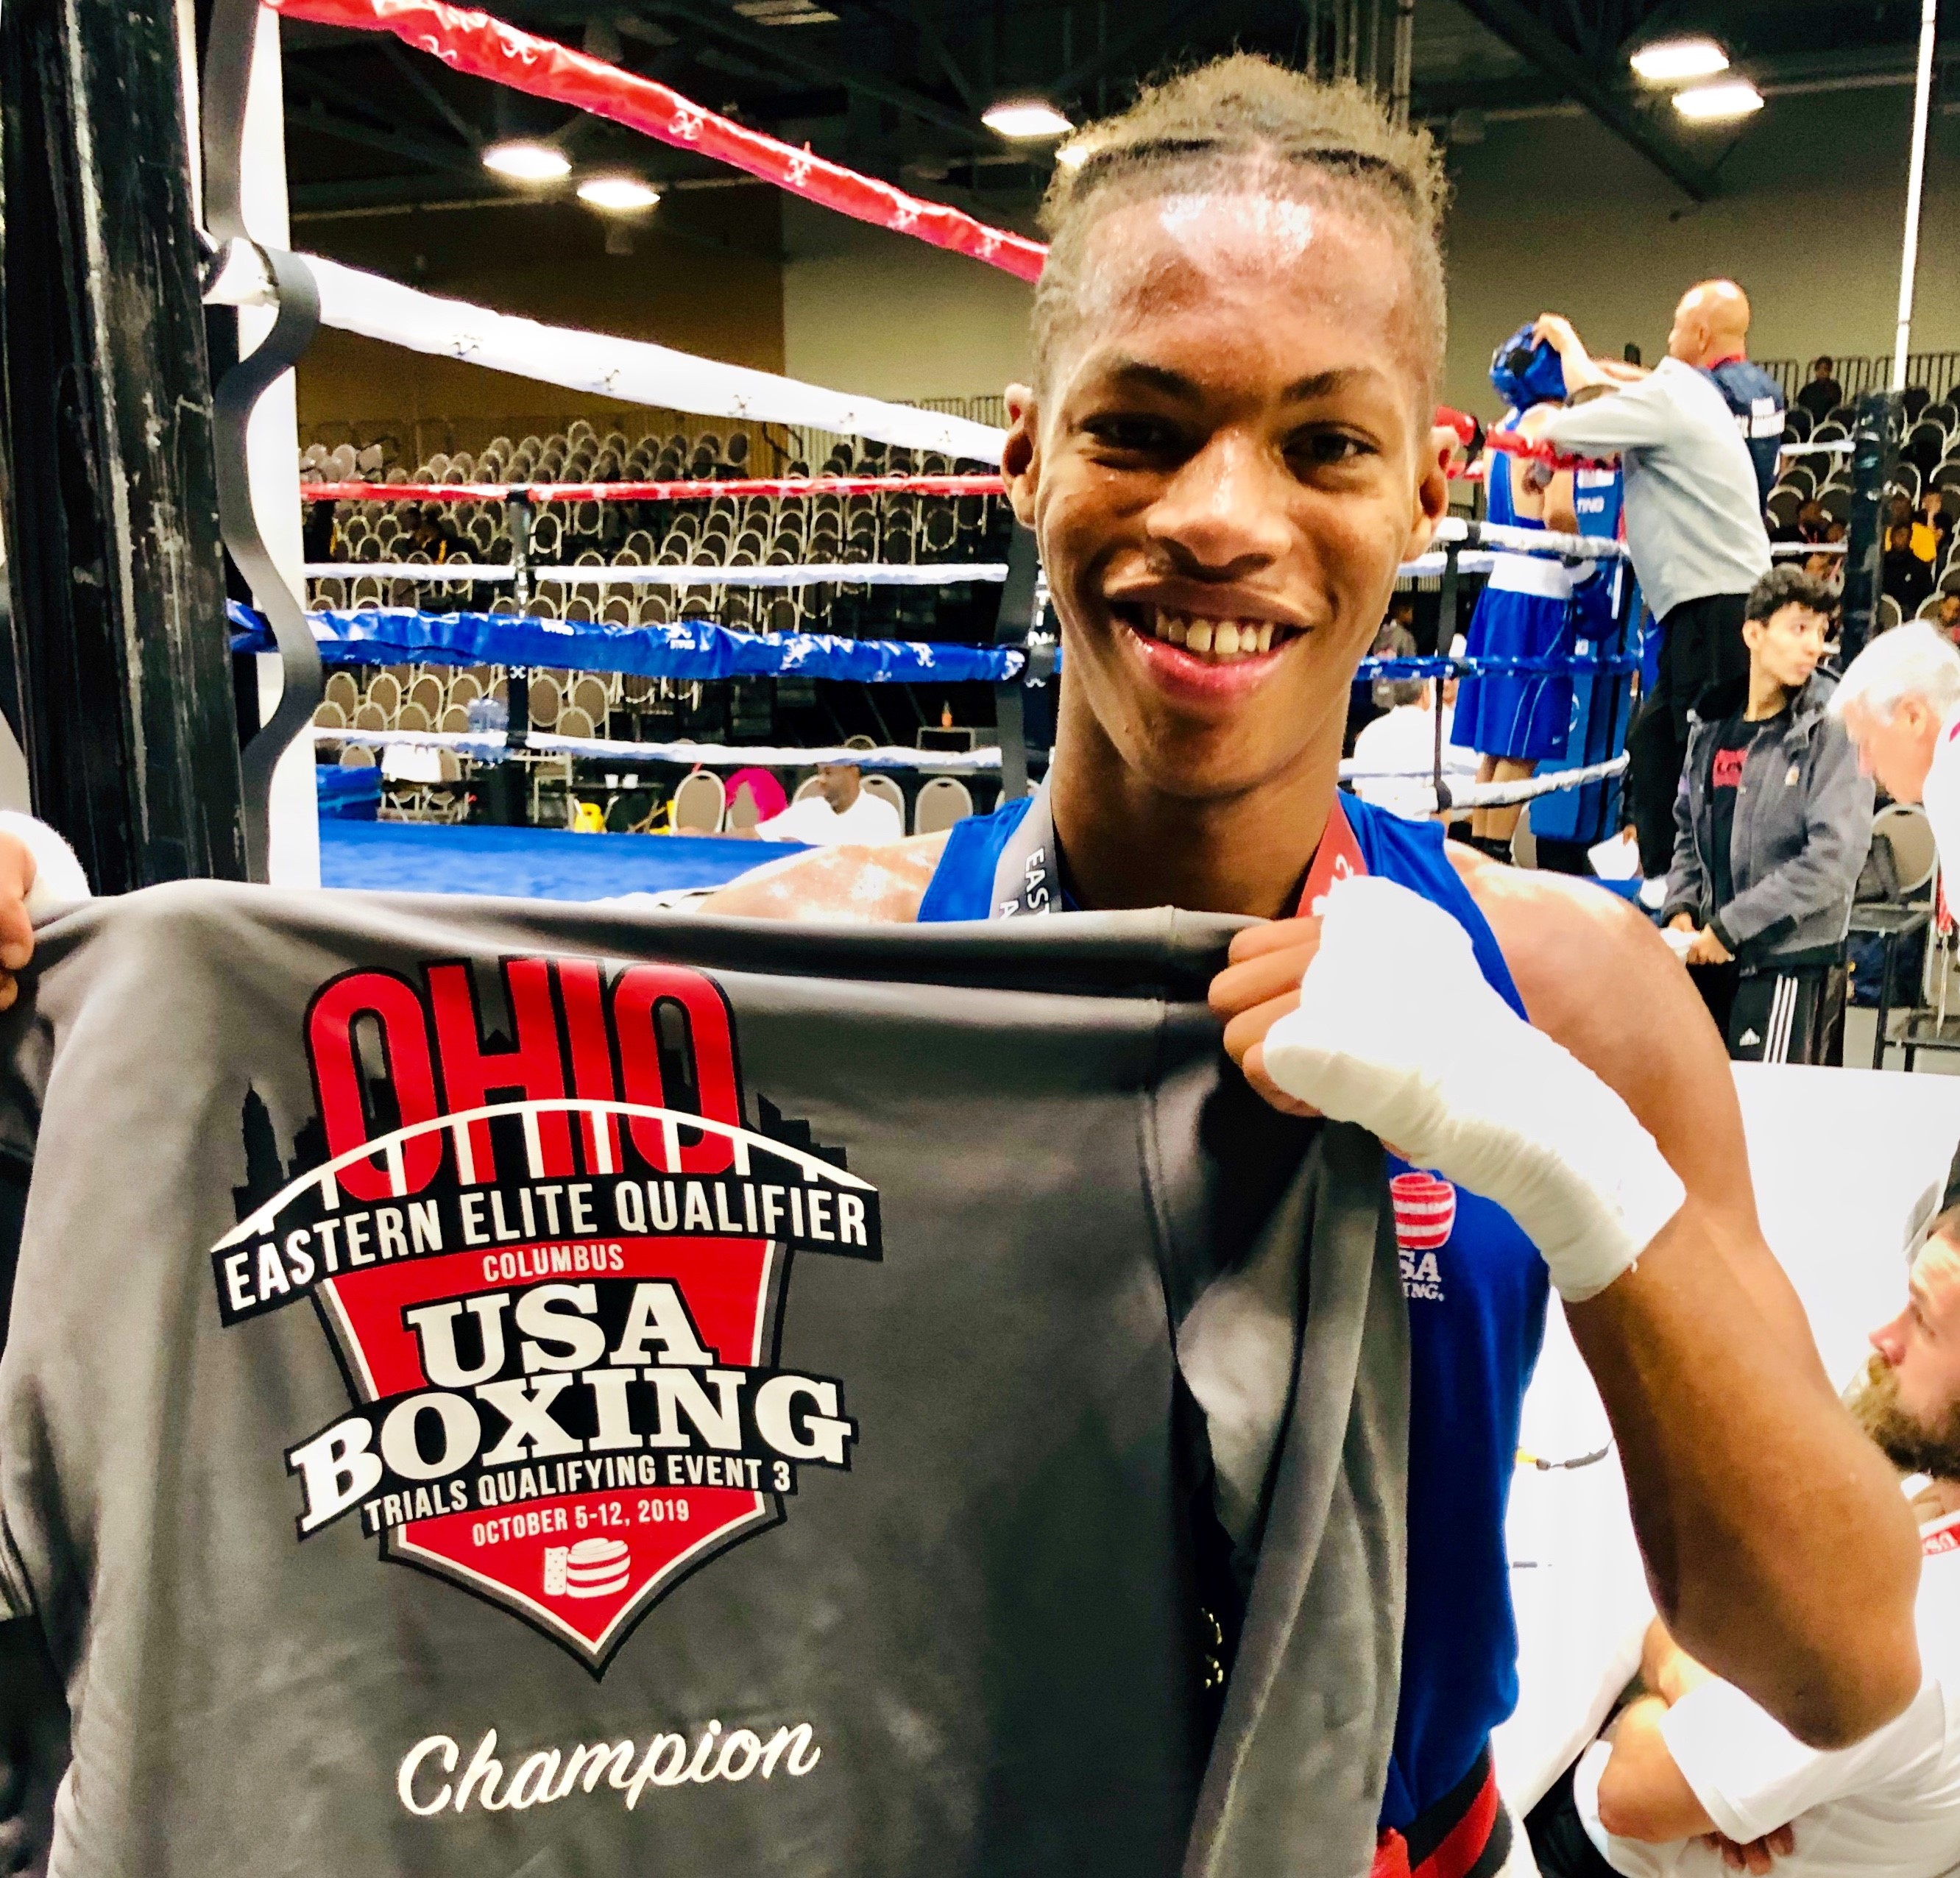 Syracuse boxer Amir 'Cash' Anderson, 15, wins tournament, inches closer to USA team